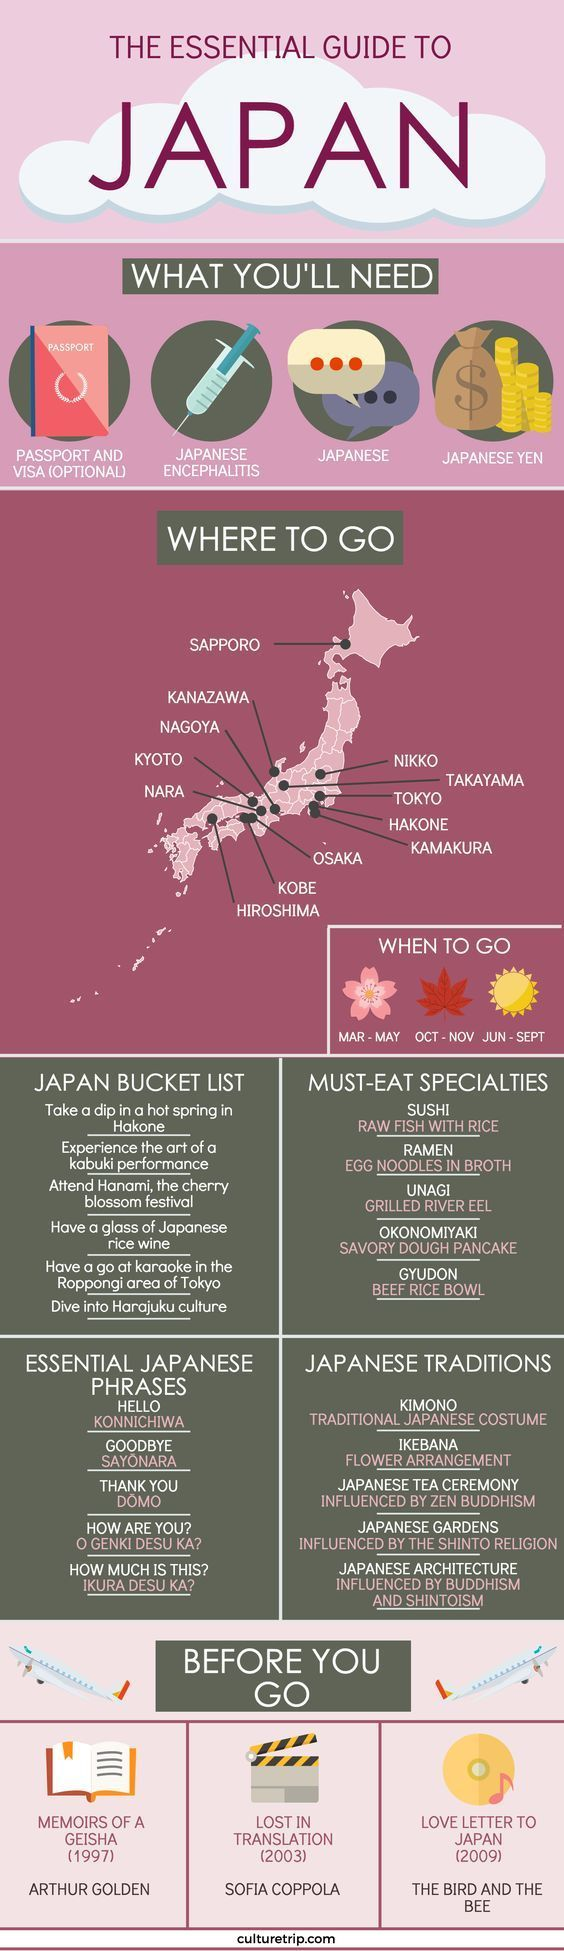 The Best Travel Guide For Travelling To Japan